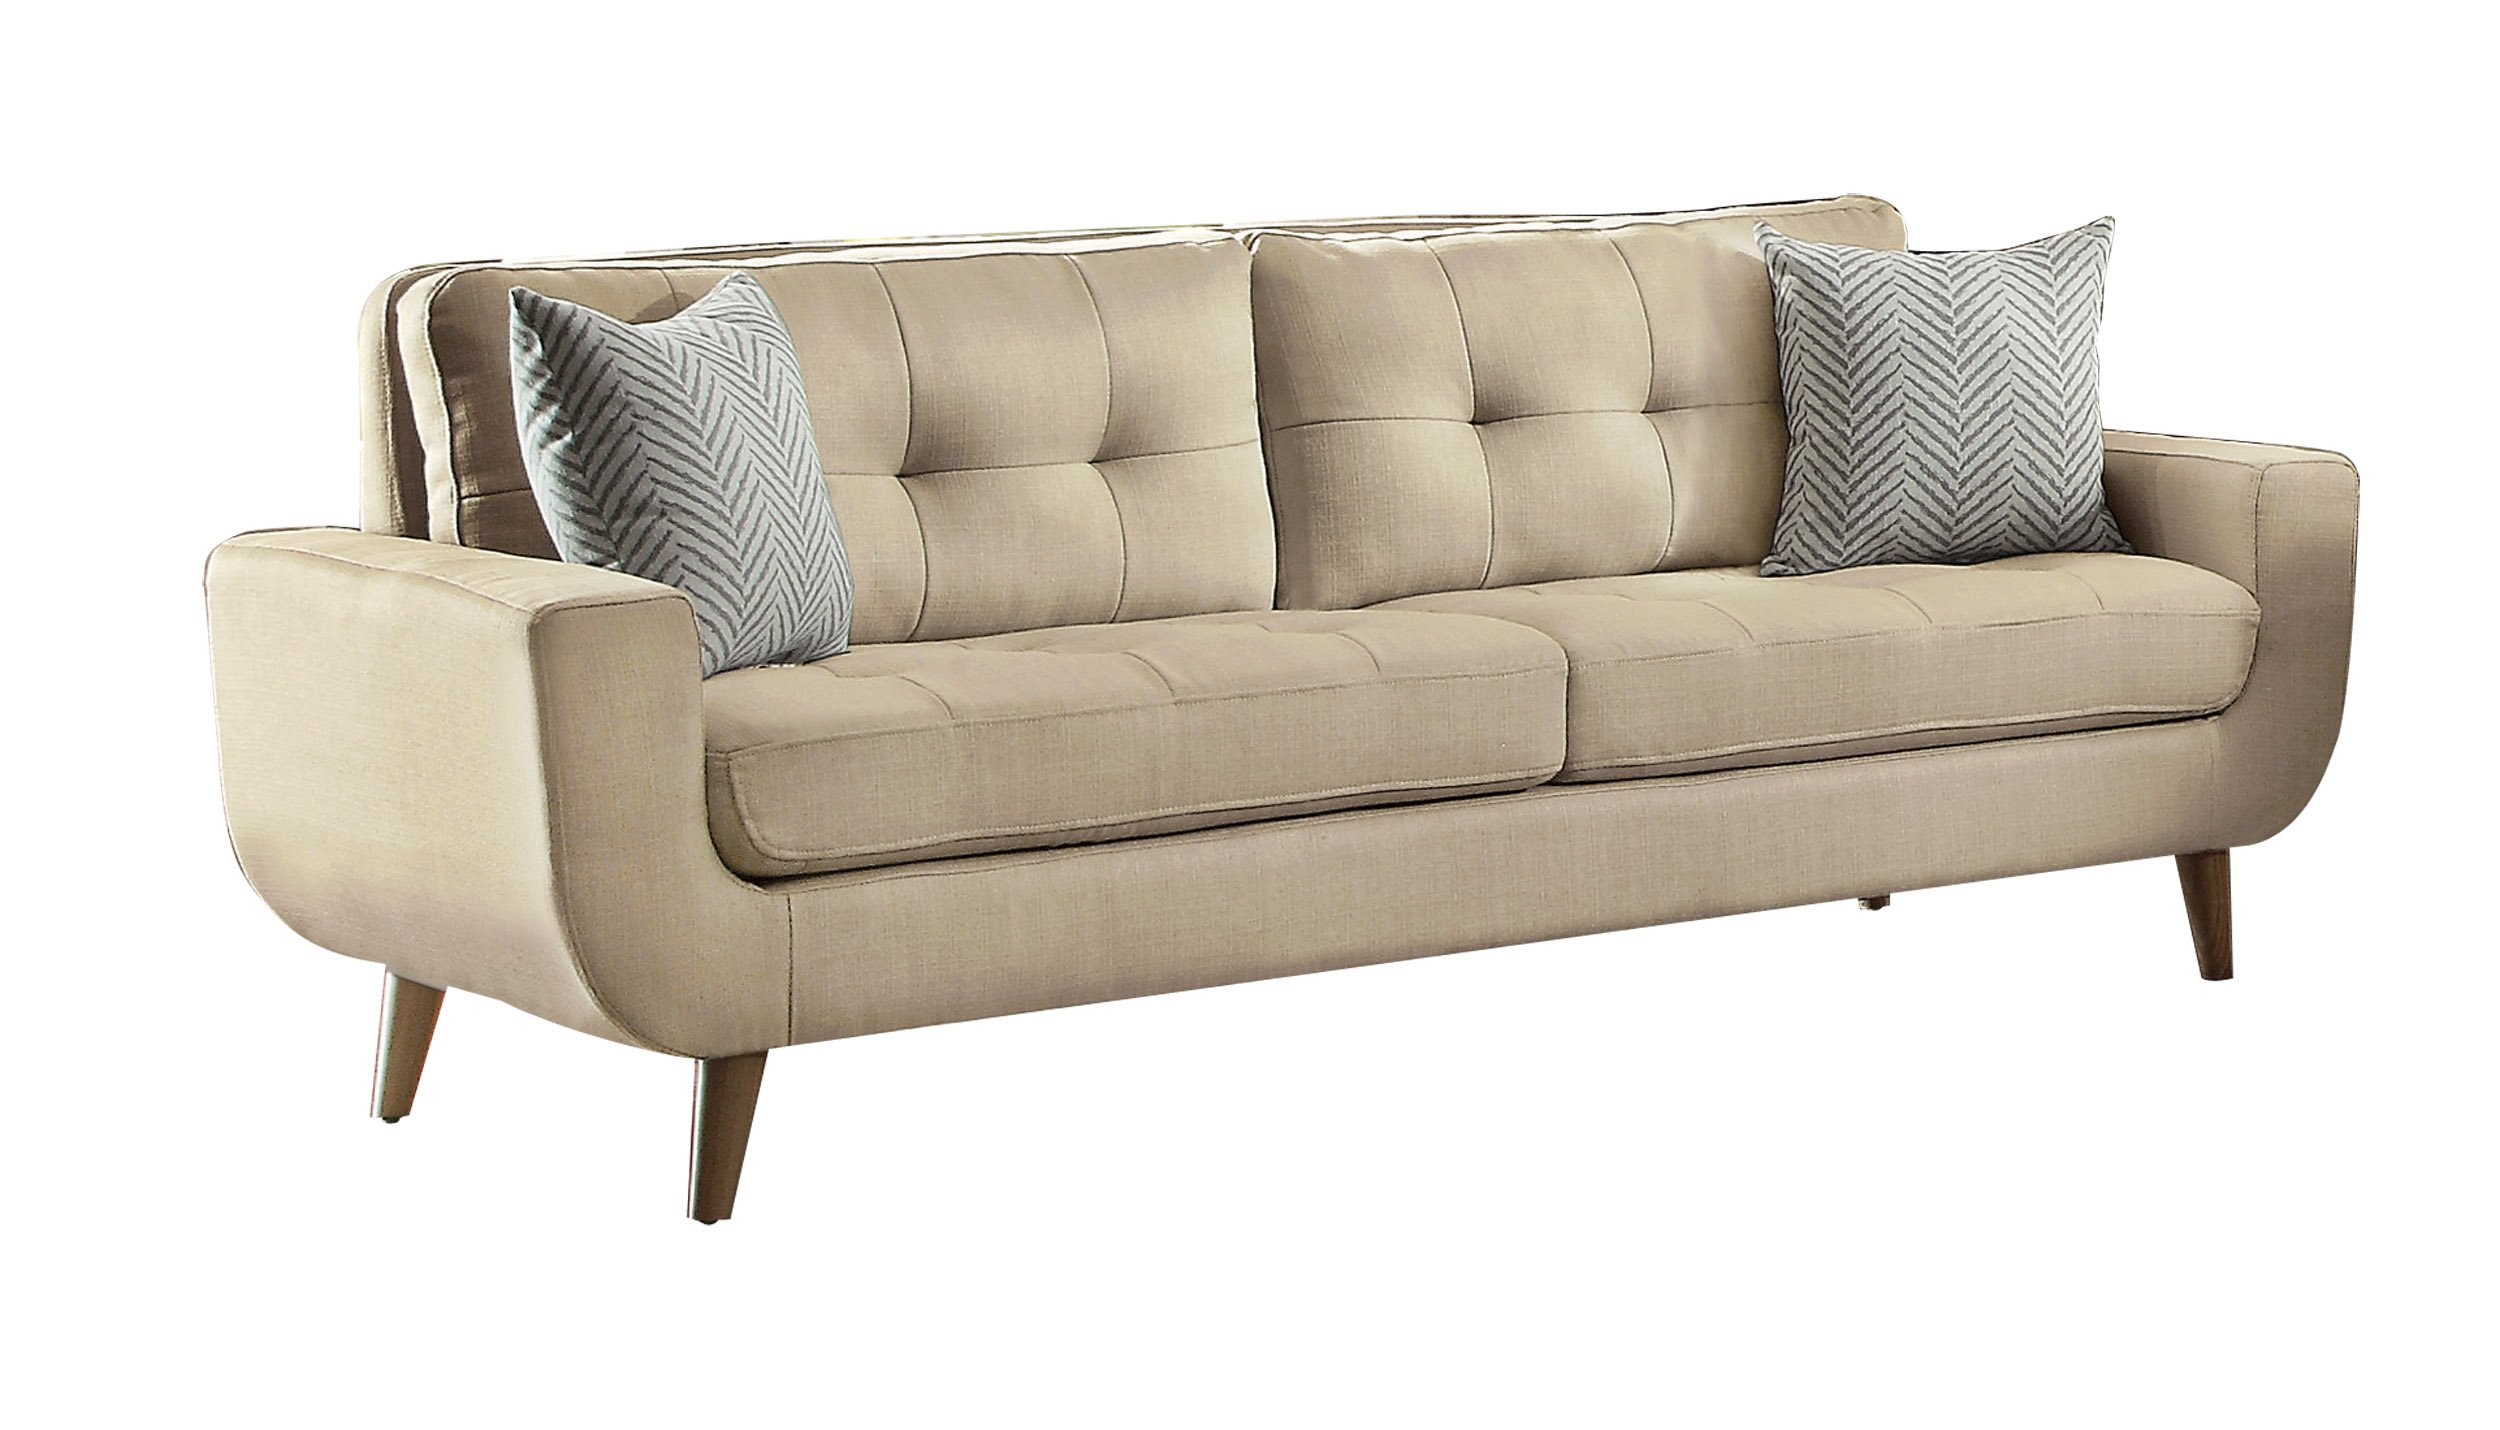 Homelegance Deryn Mid-Century Modern Sofa with Tufted Back and Two Herringbone Throw Pillows, Beige by Homelegance